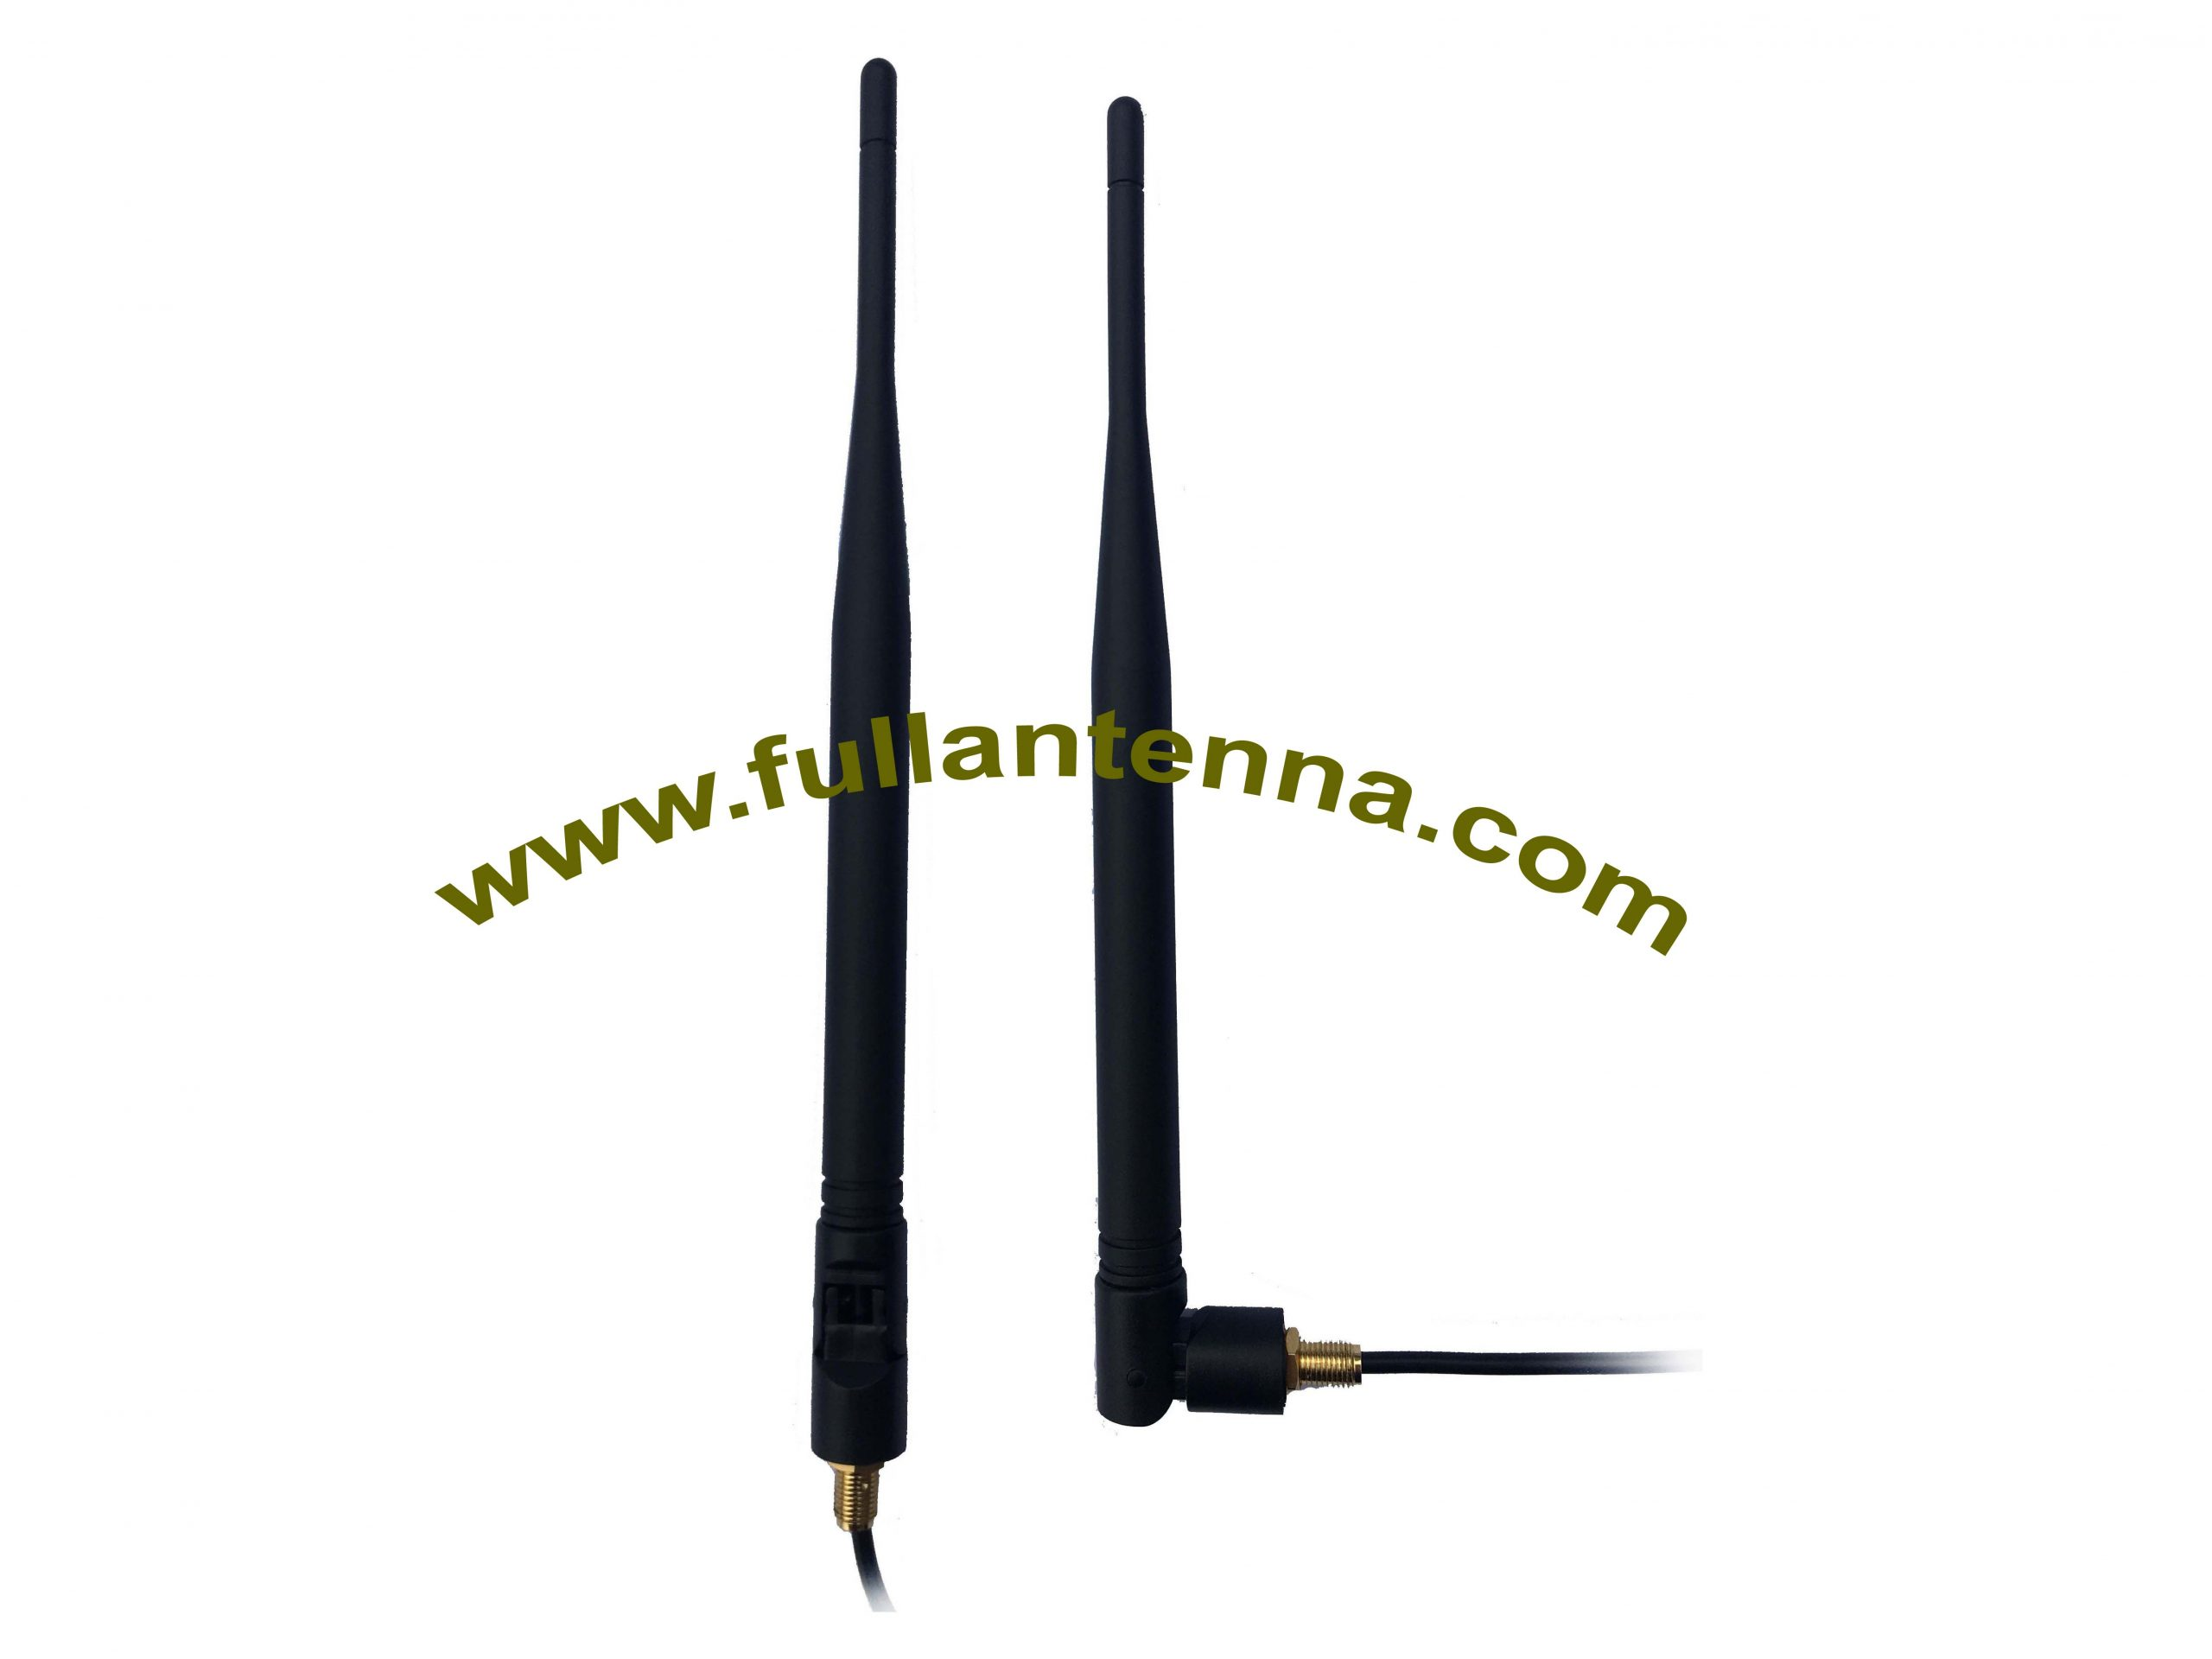 P/N:FALTE.1102,4G/LTE External Antenna,LTE rubber antenna with cable screw mount